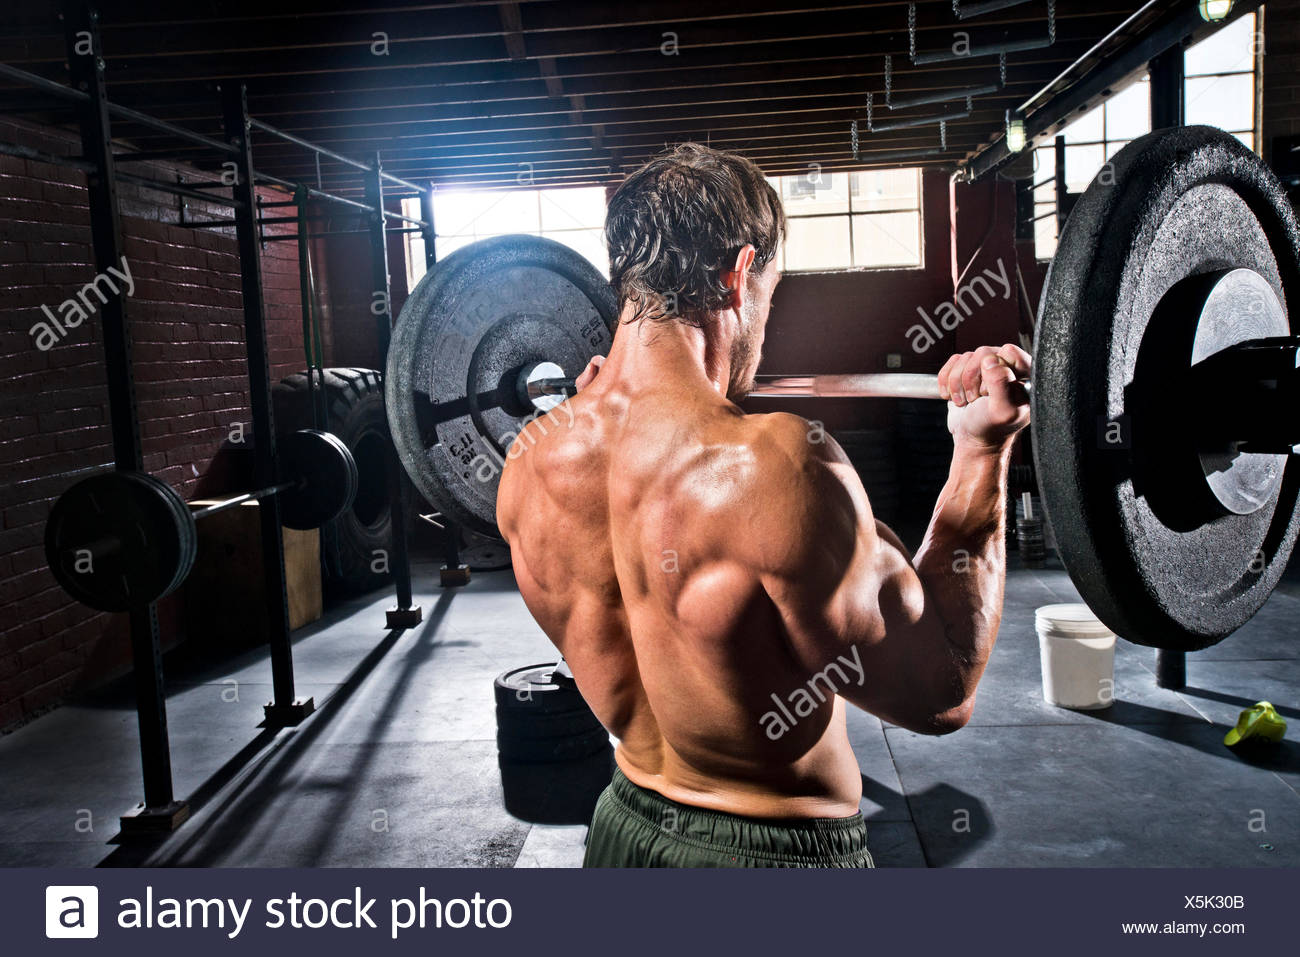 A crossfit athlete performs bicep curls. - Stock Image